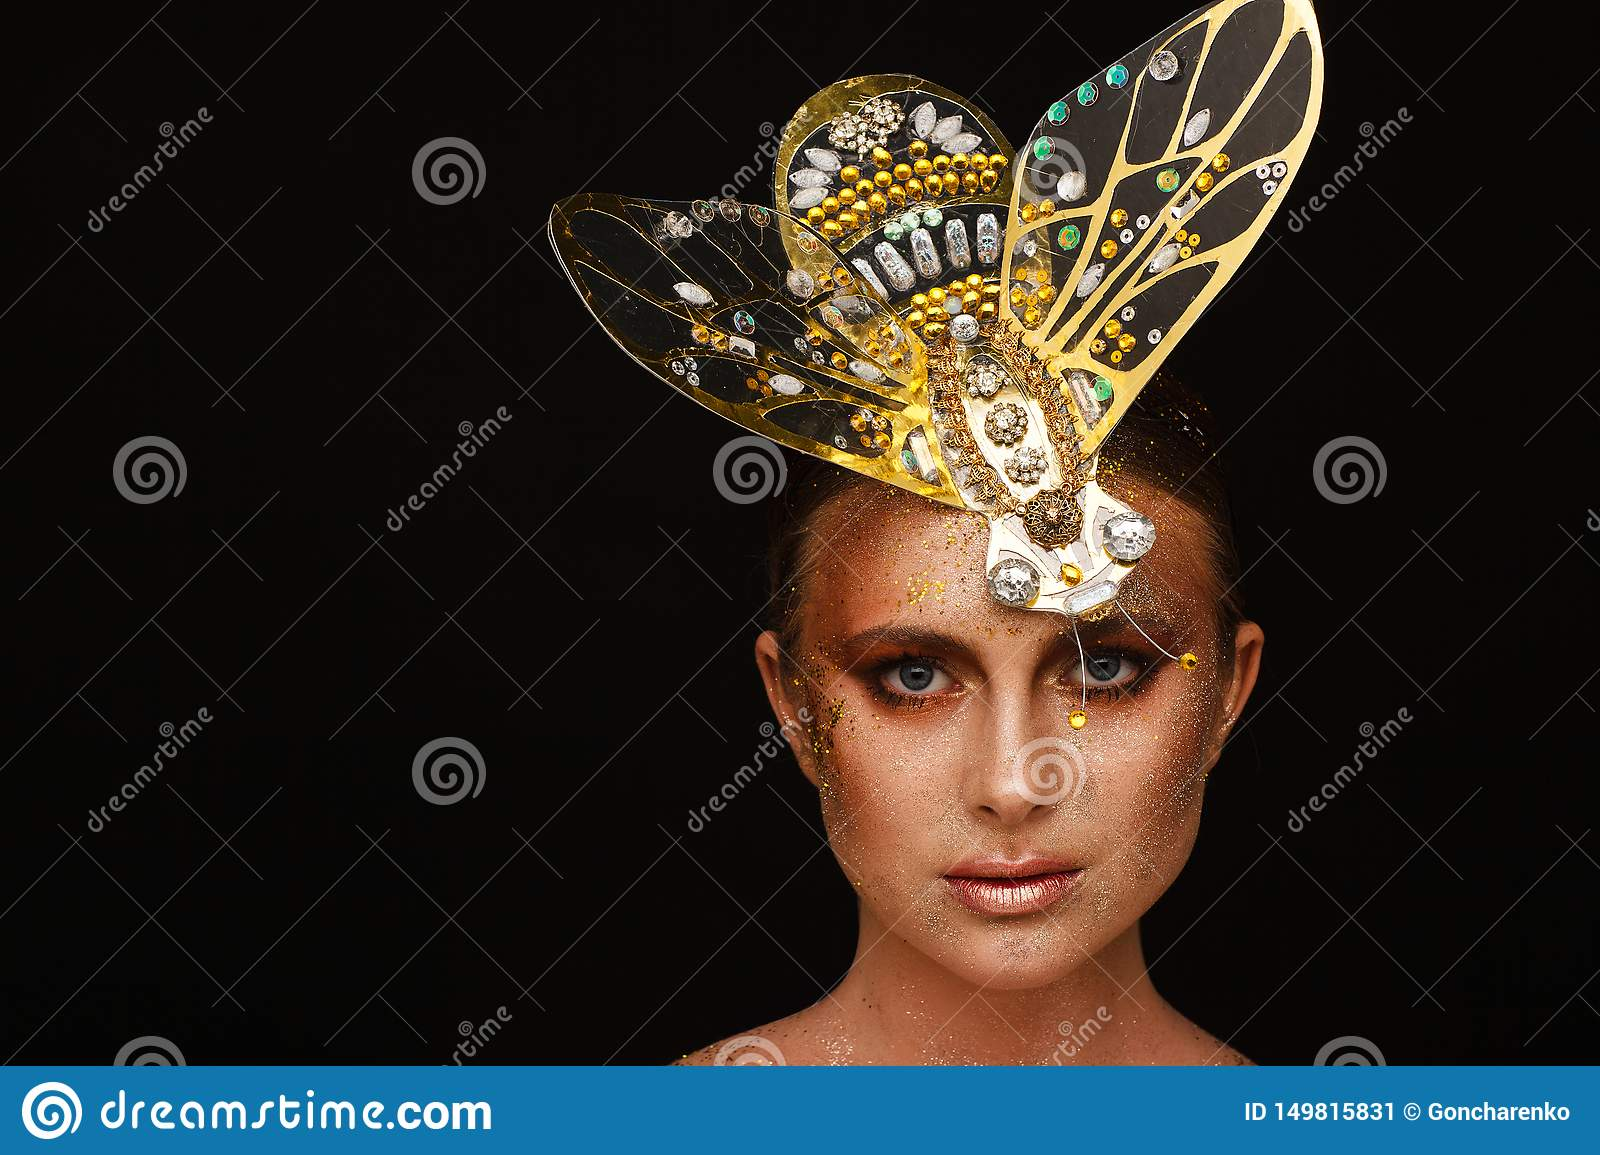 Portrait of a beautiful woman with expressive creative make-up in bronze and with a decoration on her head